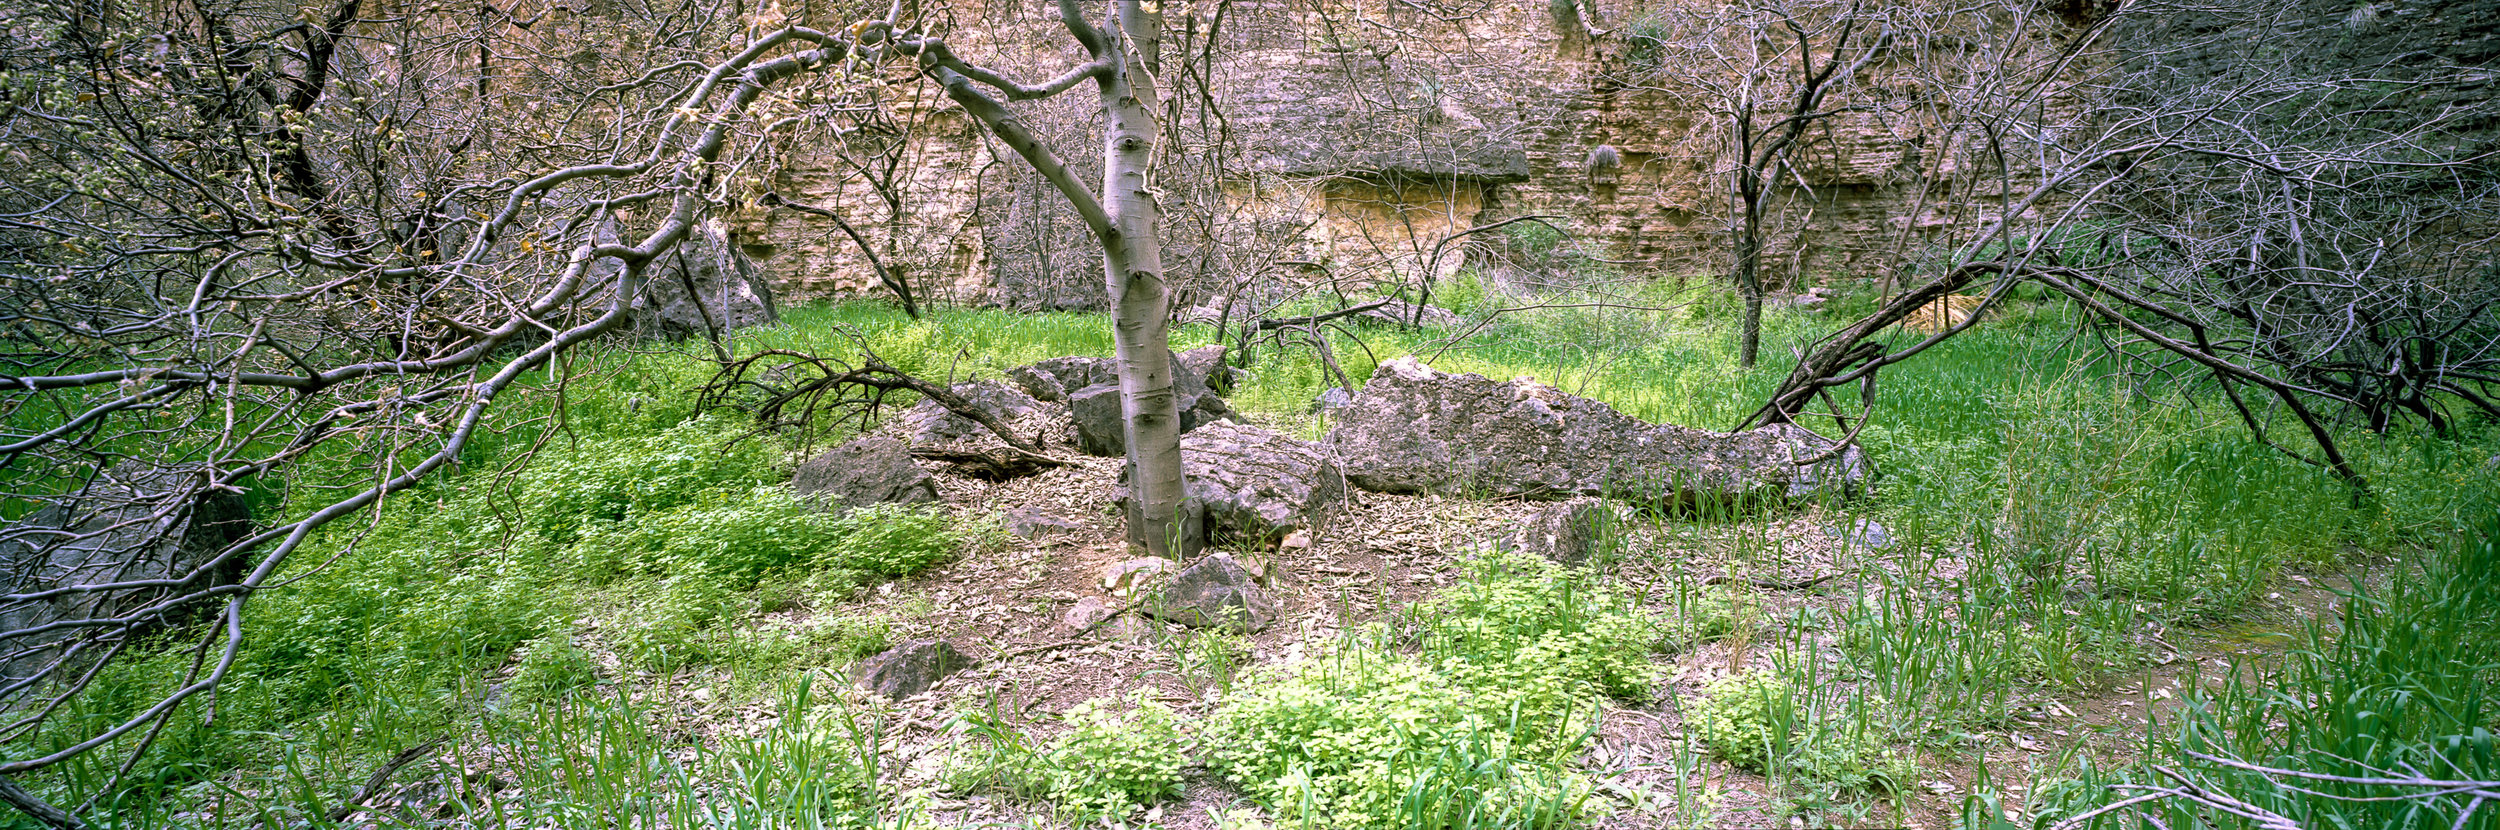 Greenery along the banks of Kanab Creek. Ektar 100, 1sec, f/18.